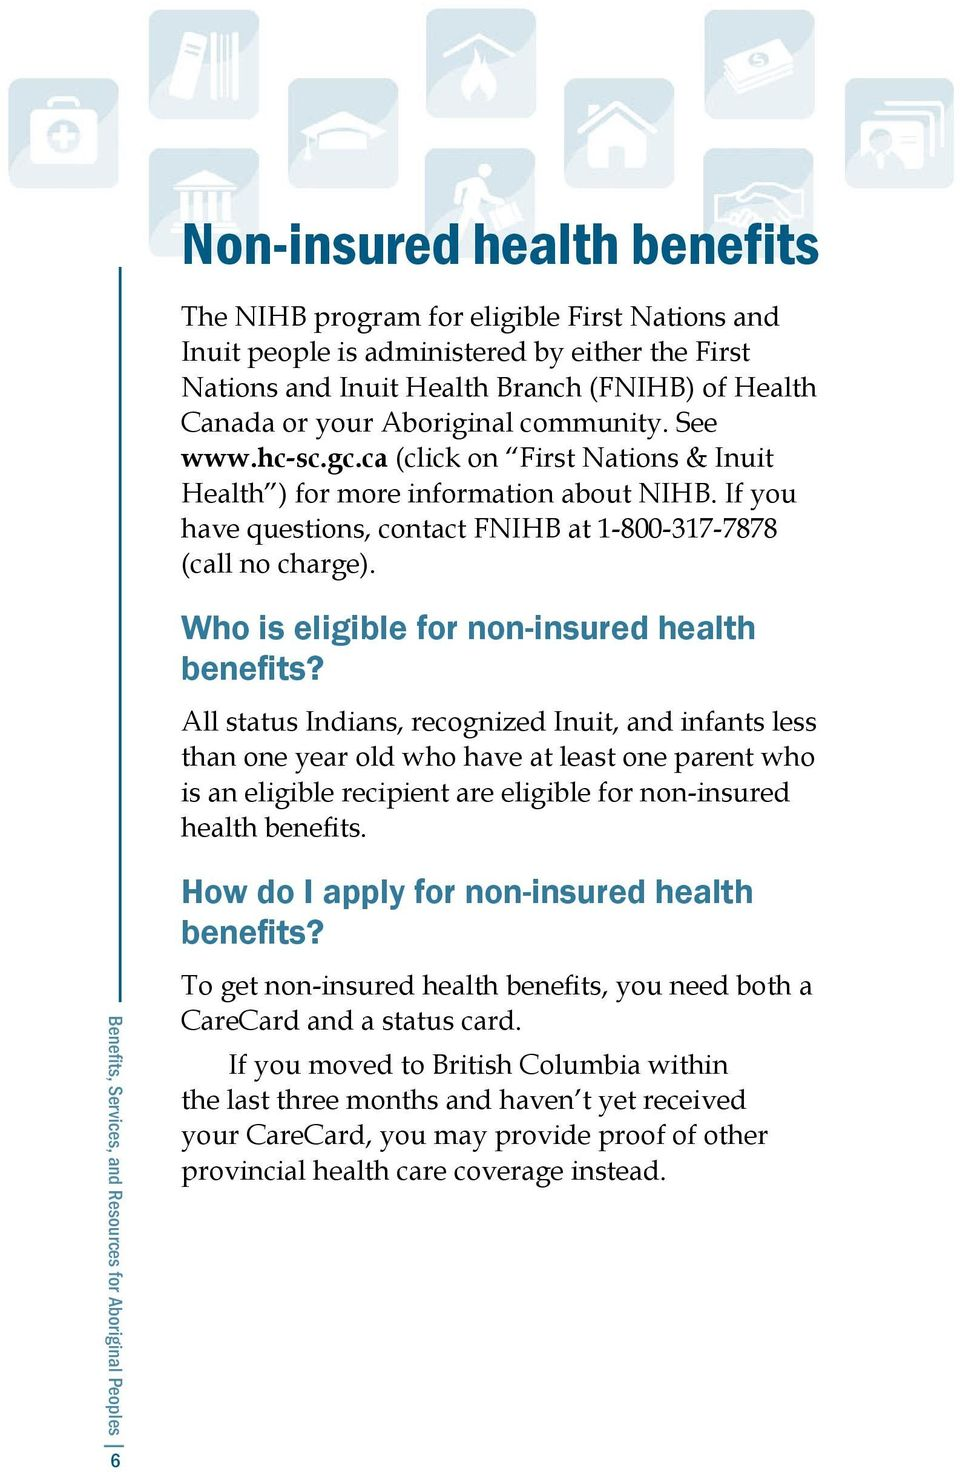 Who is eligible for non-insured health benefits?